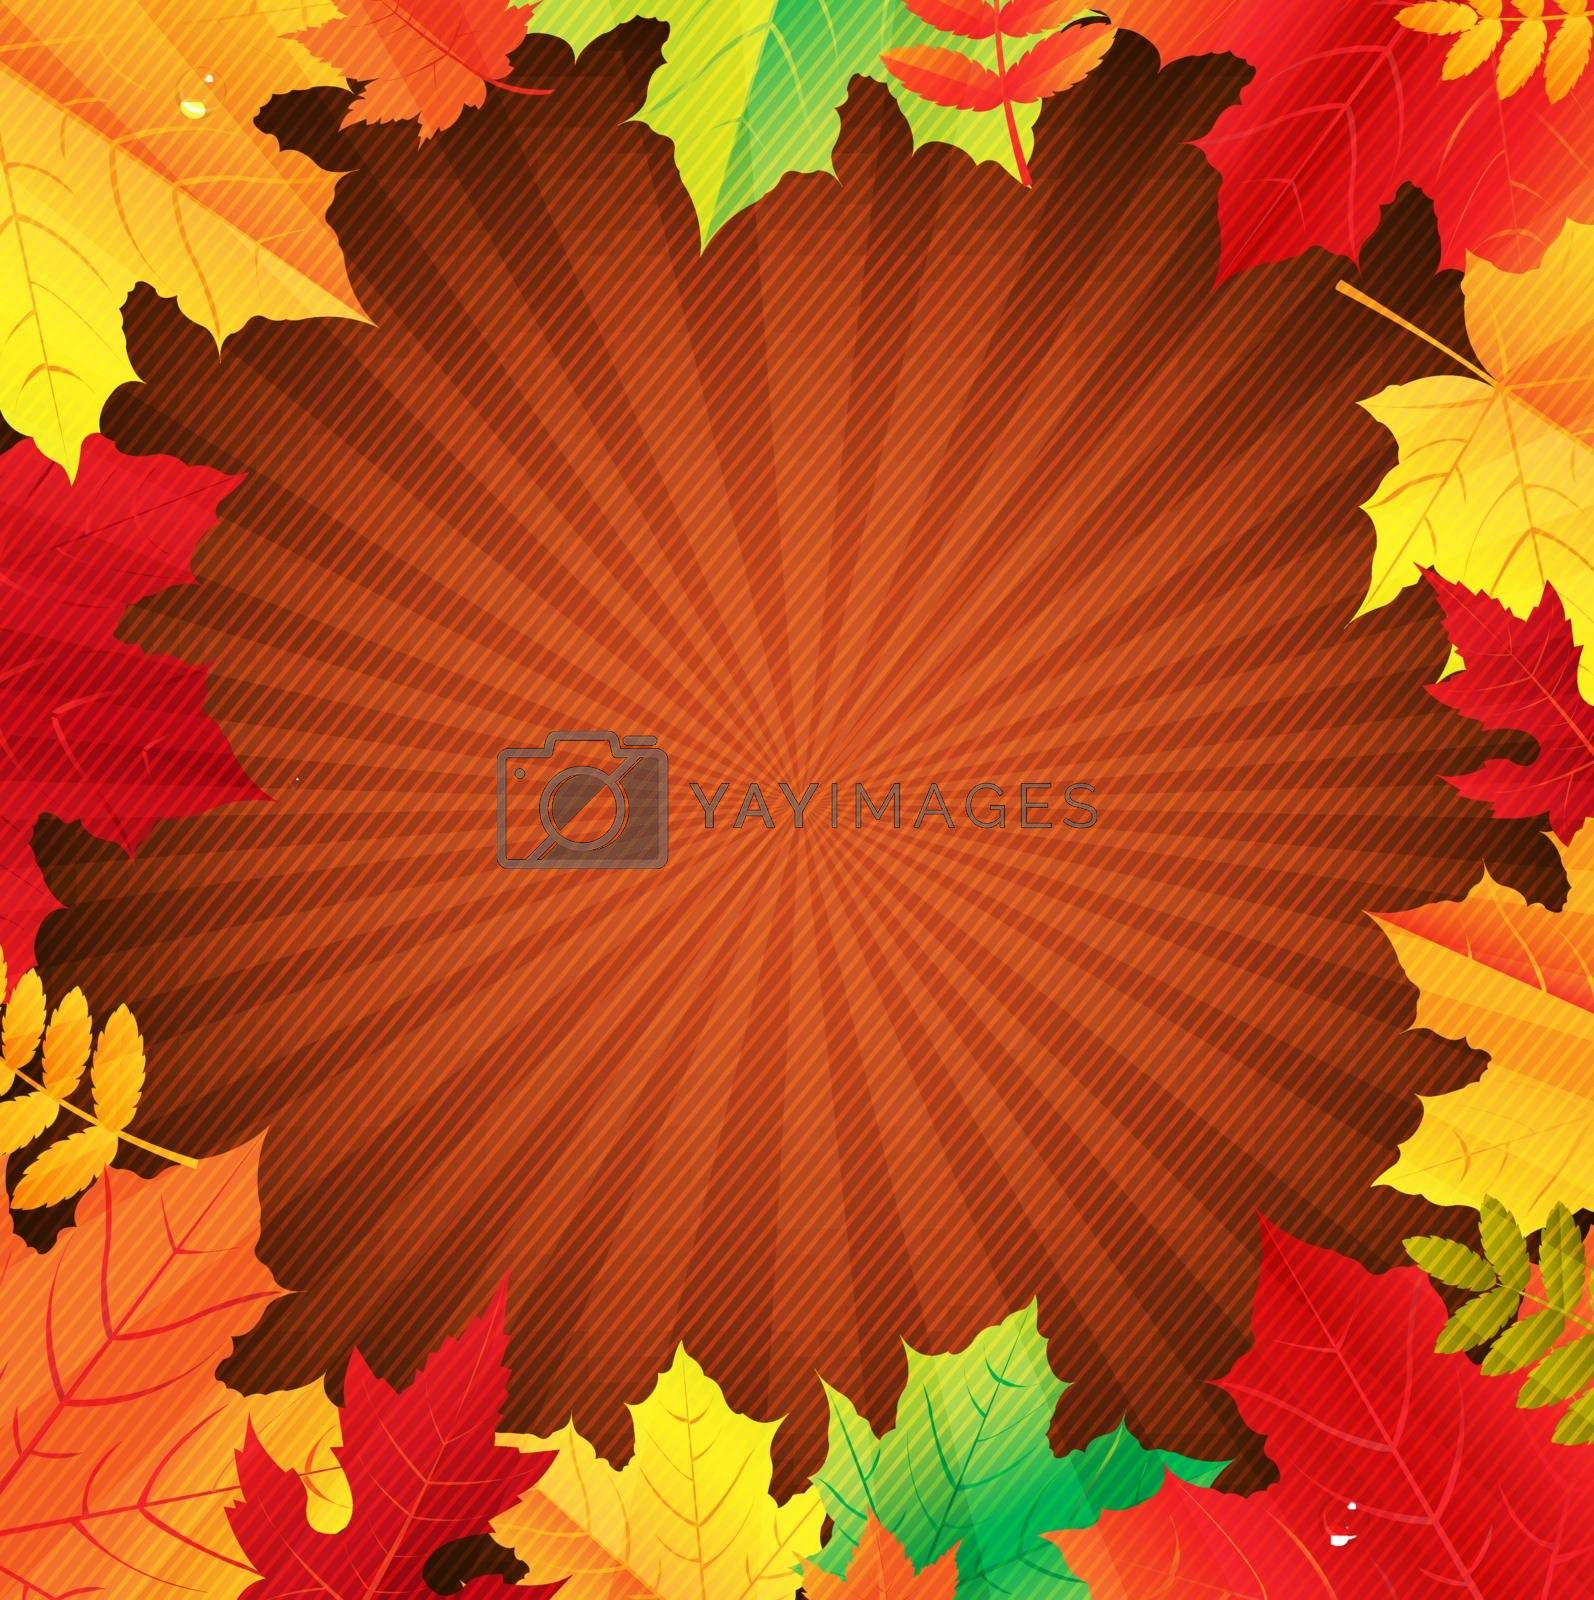 Autumn Poster With Leaves by adamson